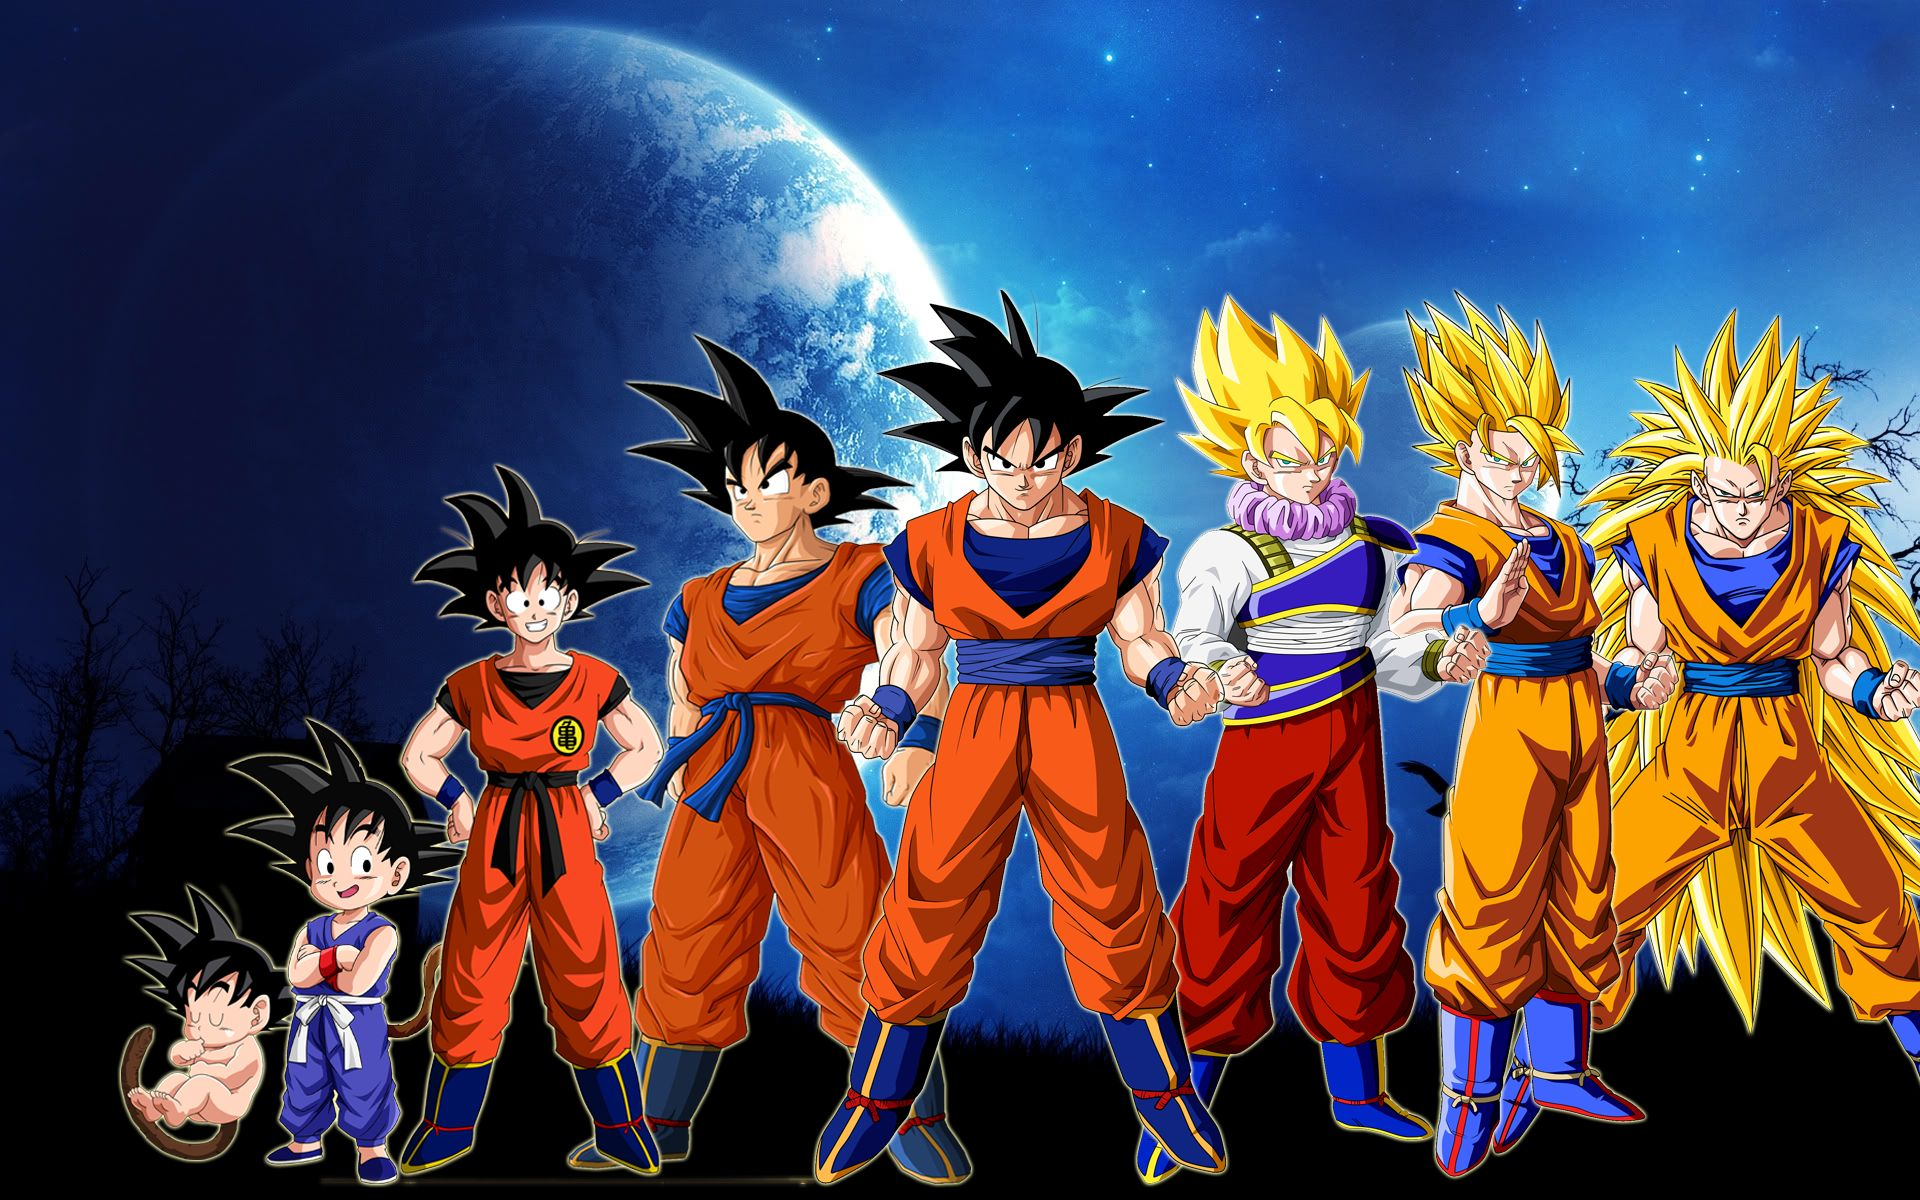 Dragon ball z full hd fond d 39 cran and arri re plan for Fond ecran dbz